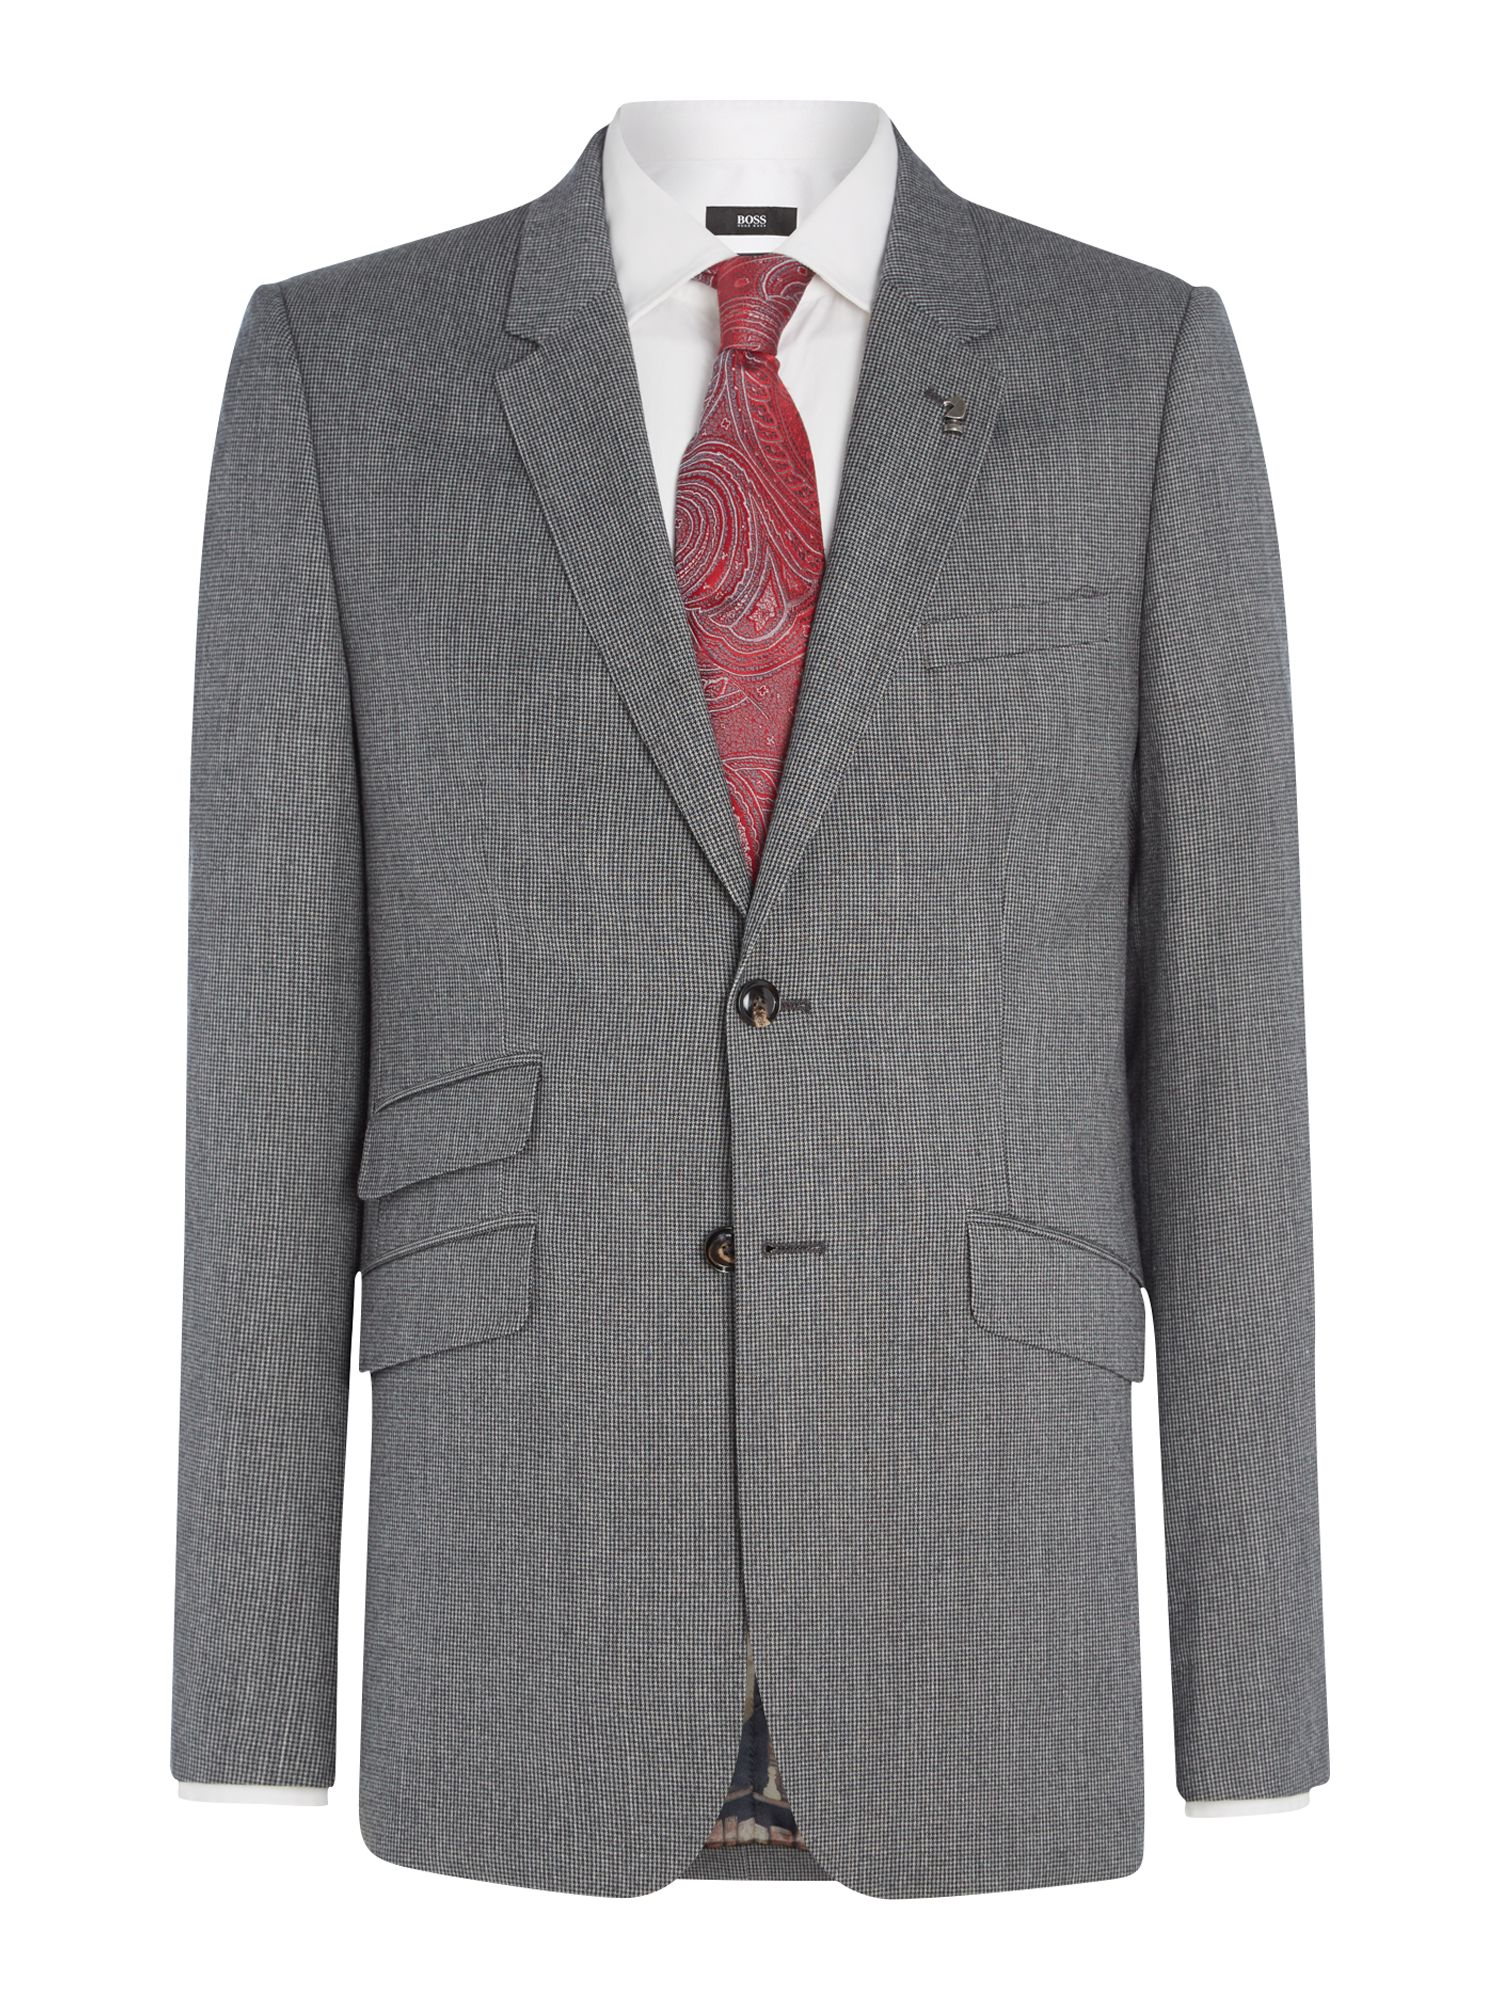 Mens Ted Baker Gather Textured Suit Jacket Grey